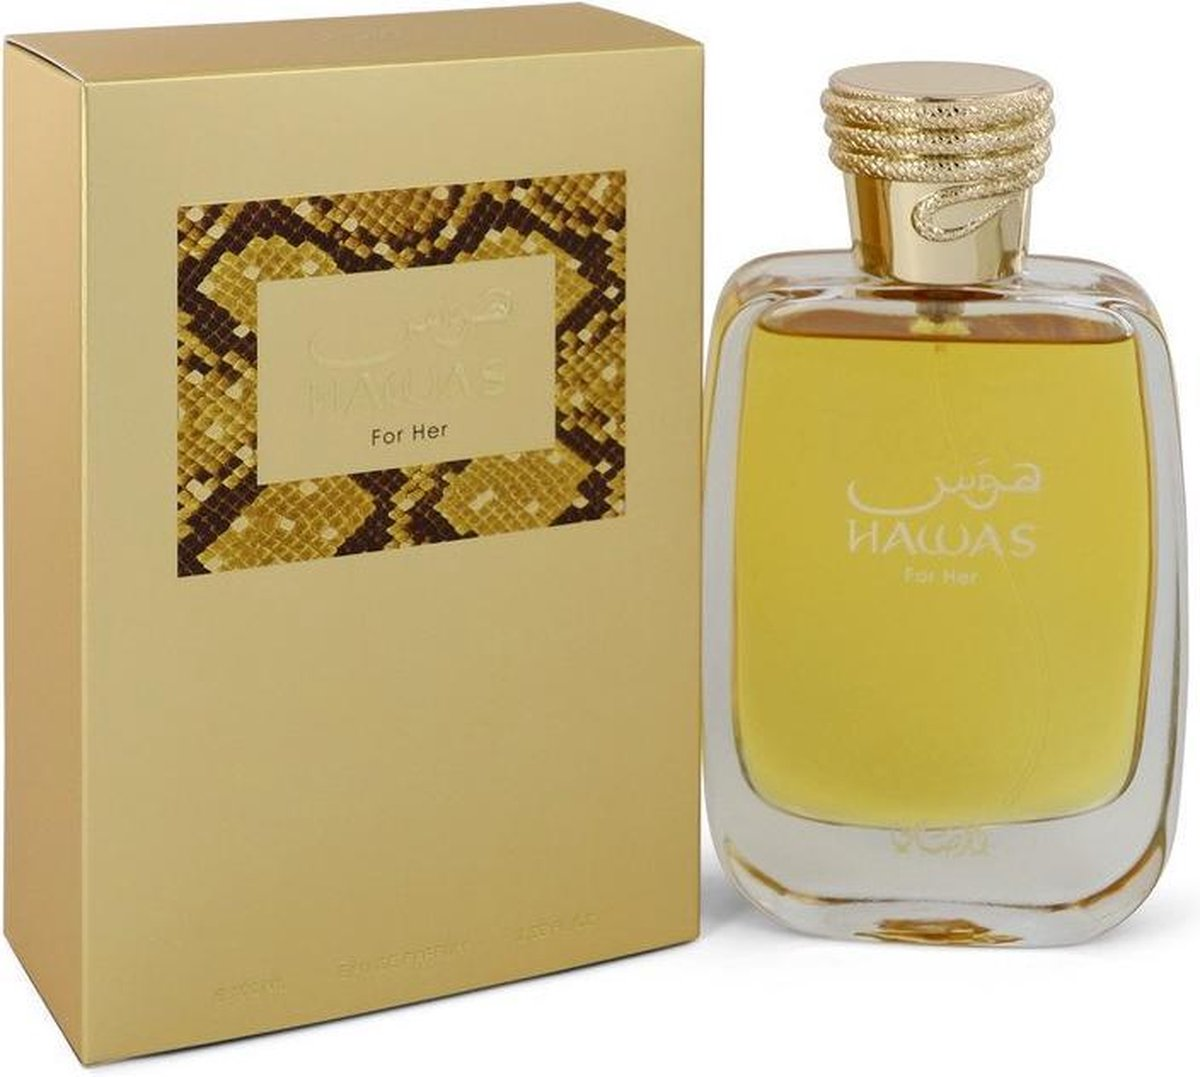 Eau De Parfum Spray 3.33 oz